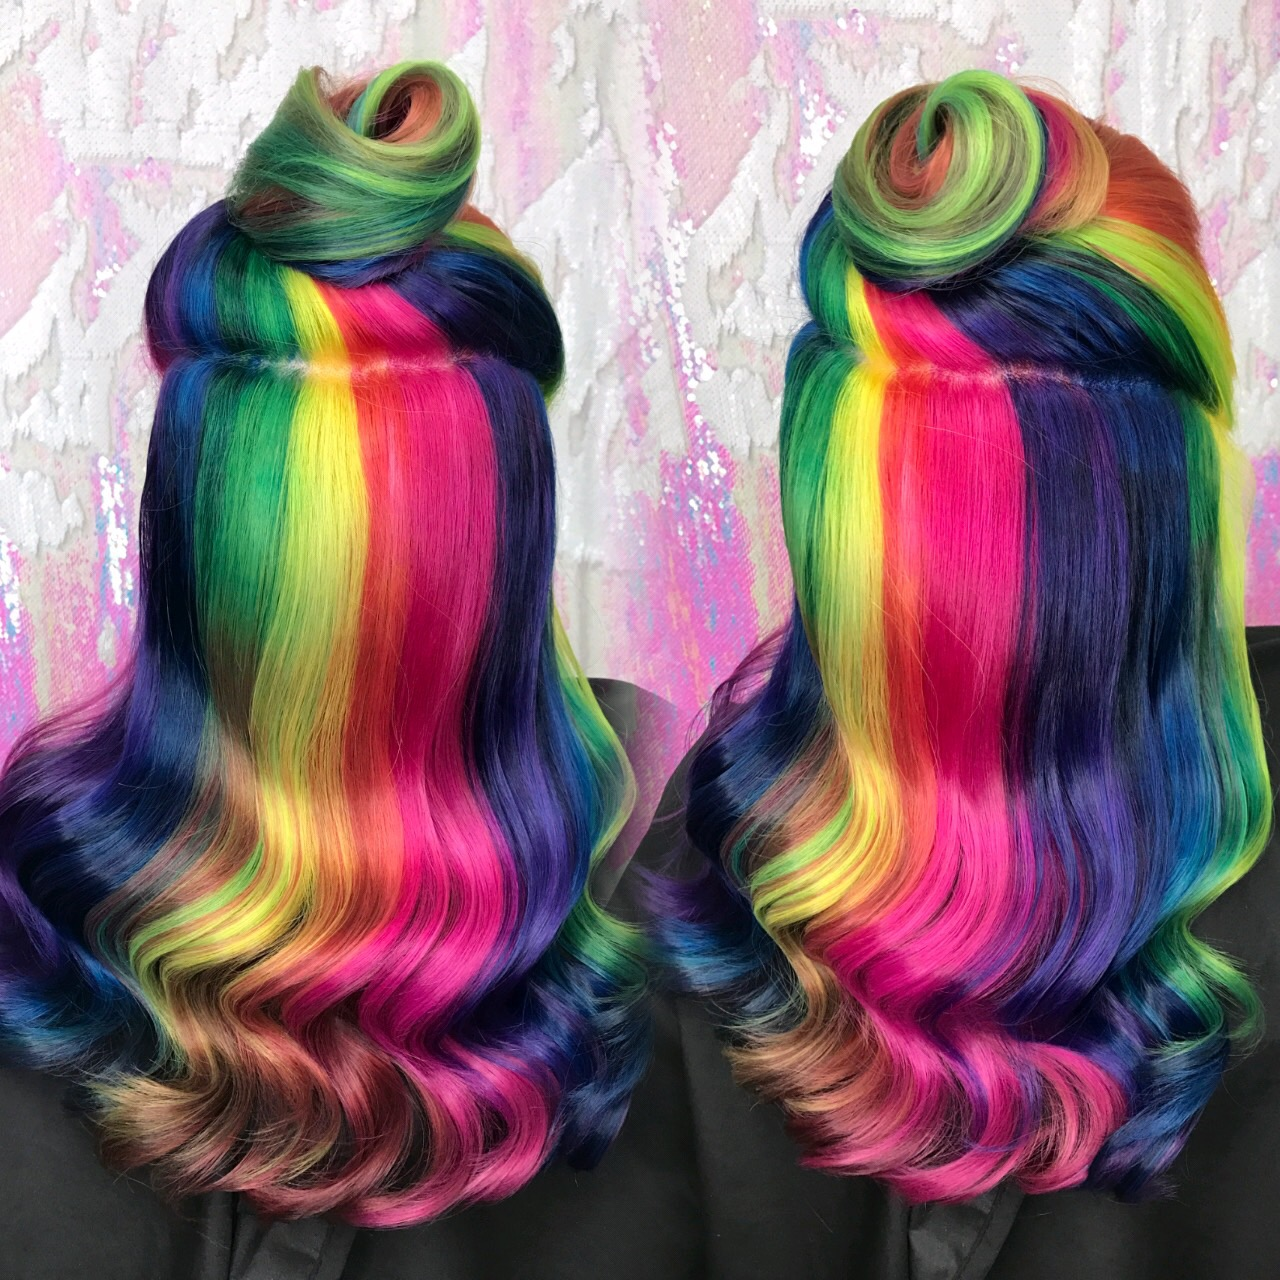 Rainbow hair-Crystal Chaos